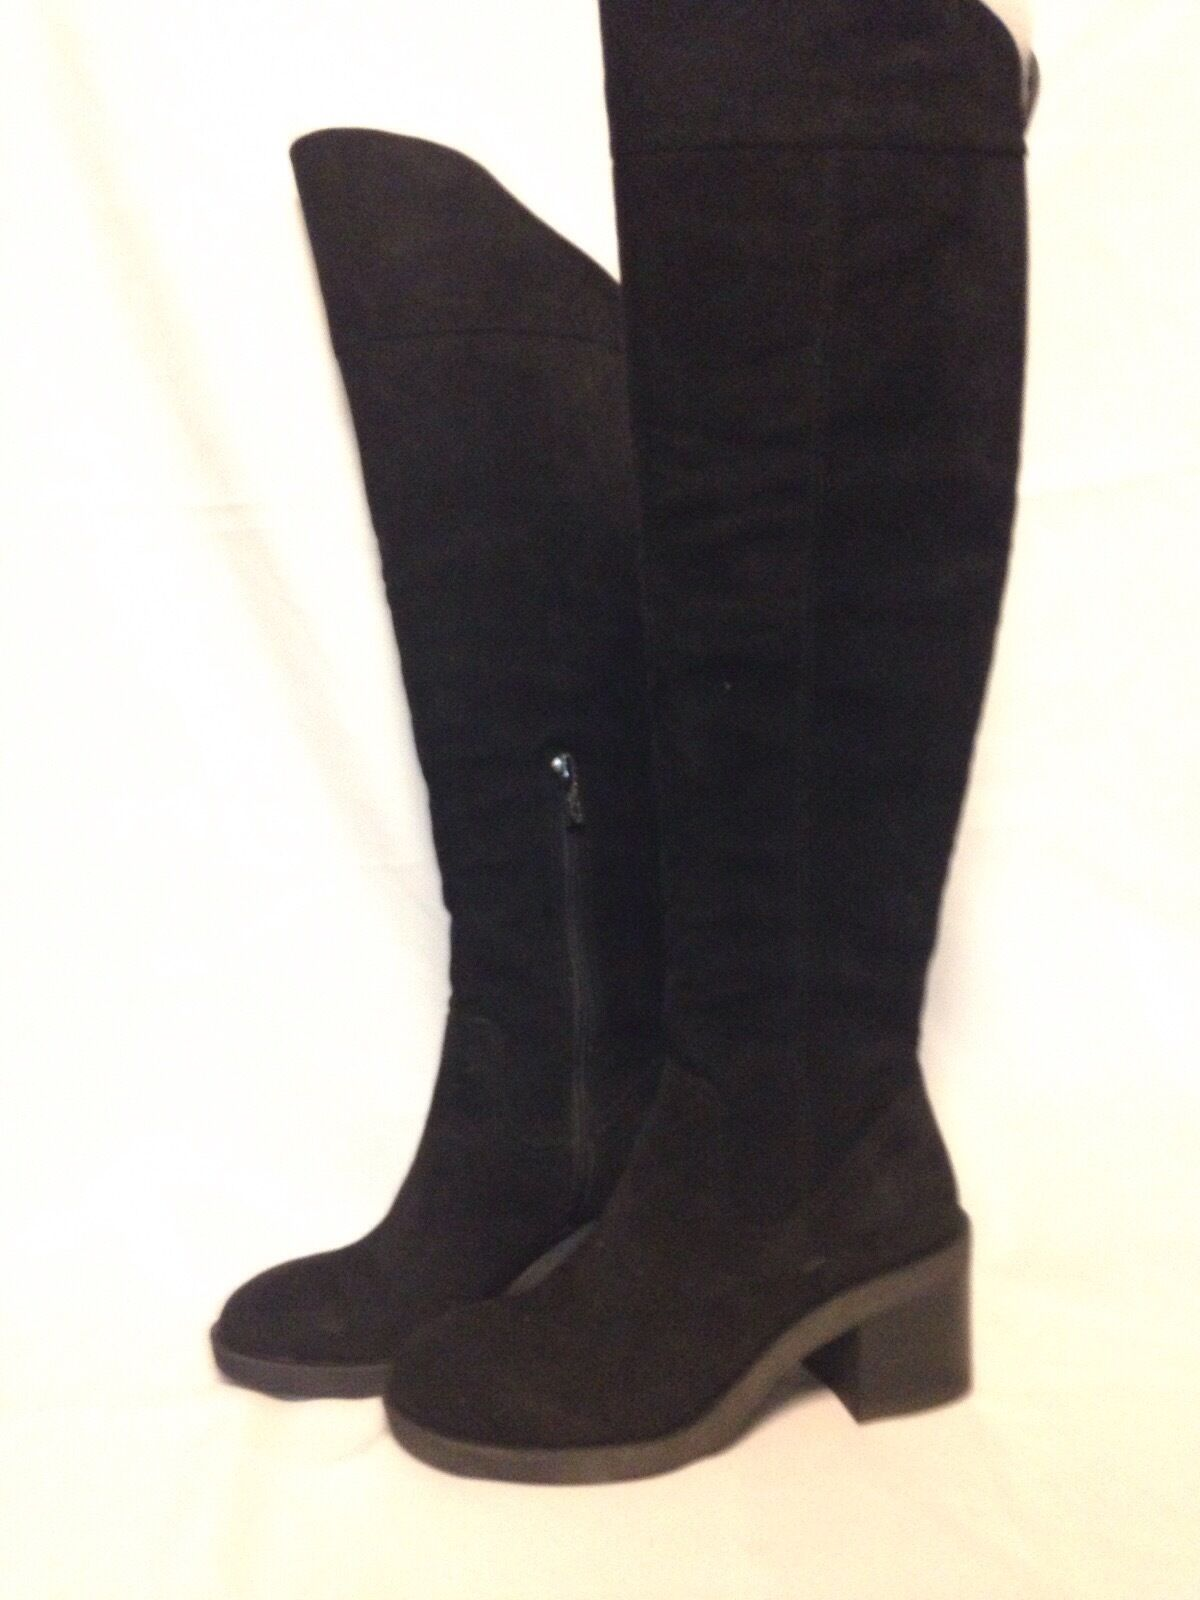 Kenneth Cole Reaction Camden Rise Tall Boot 5 M Black Suede New with Box